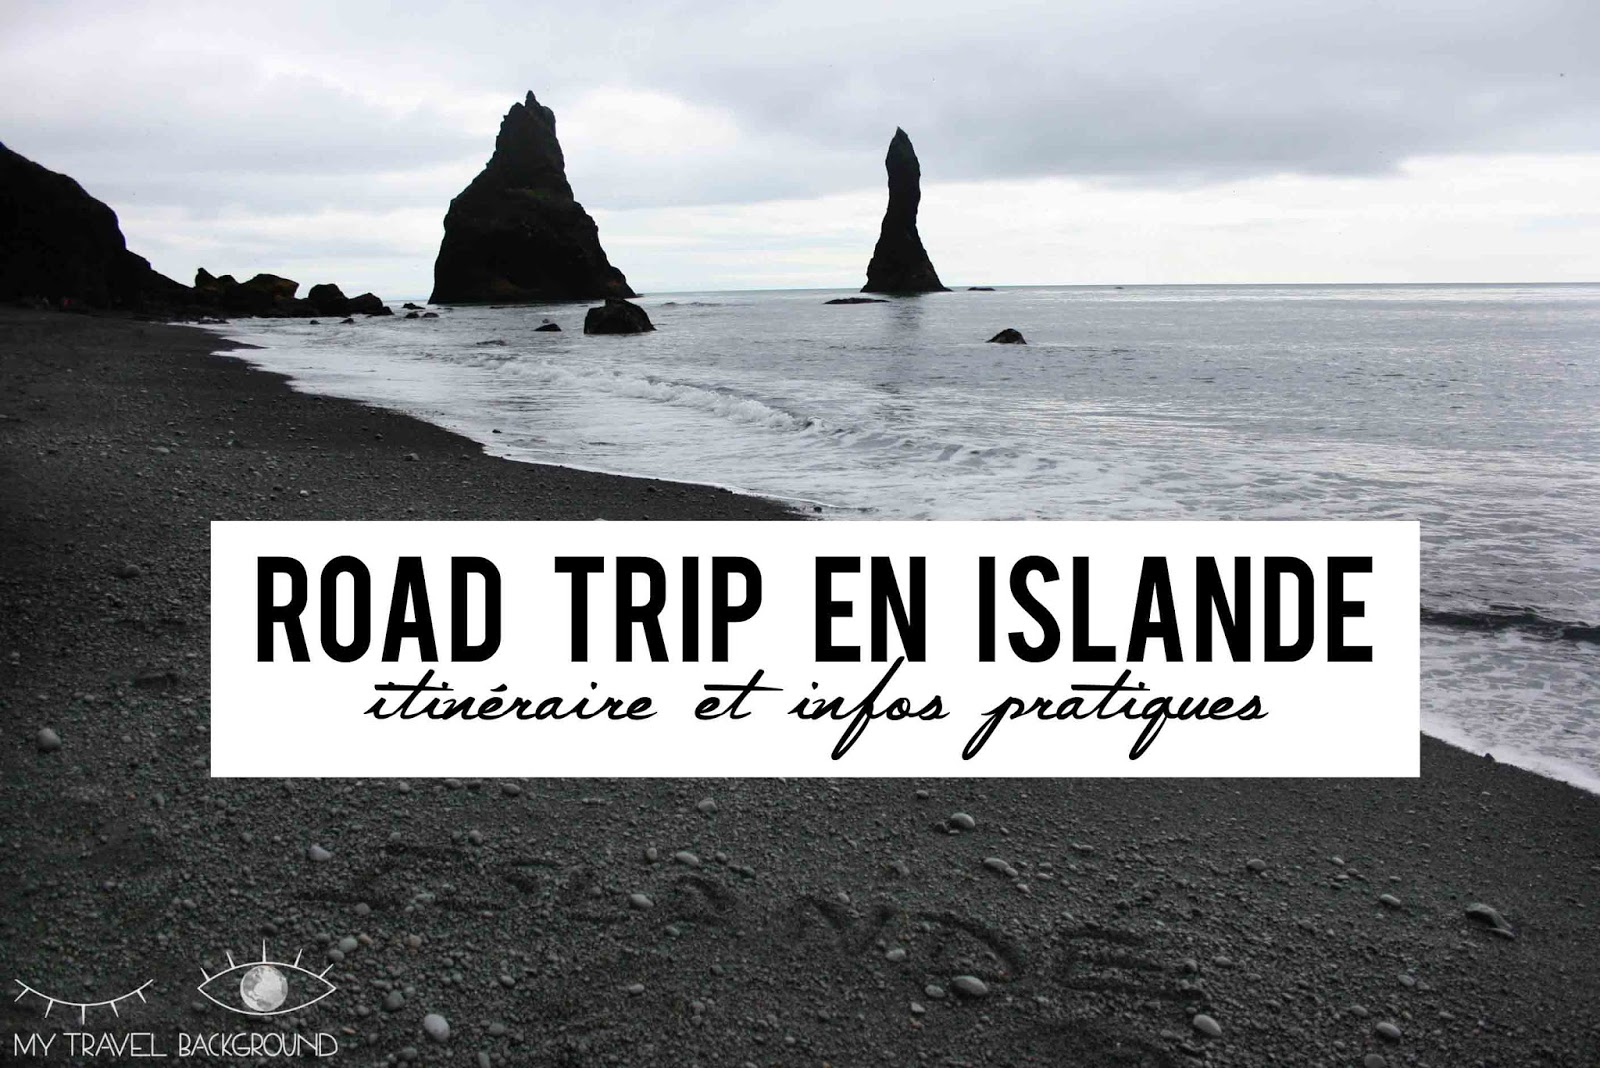 My Travel Background : Road Trip en Islande, itinéraire et infos pratiques